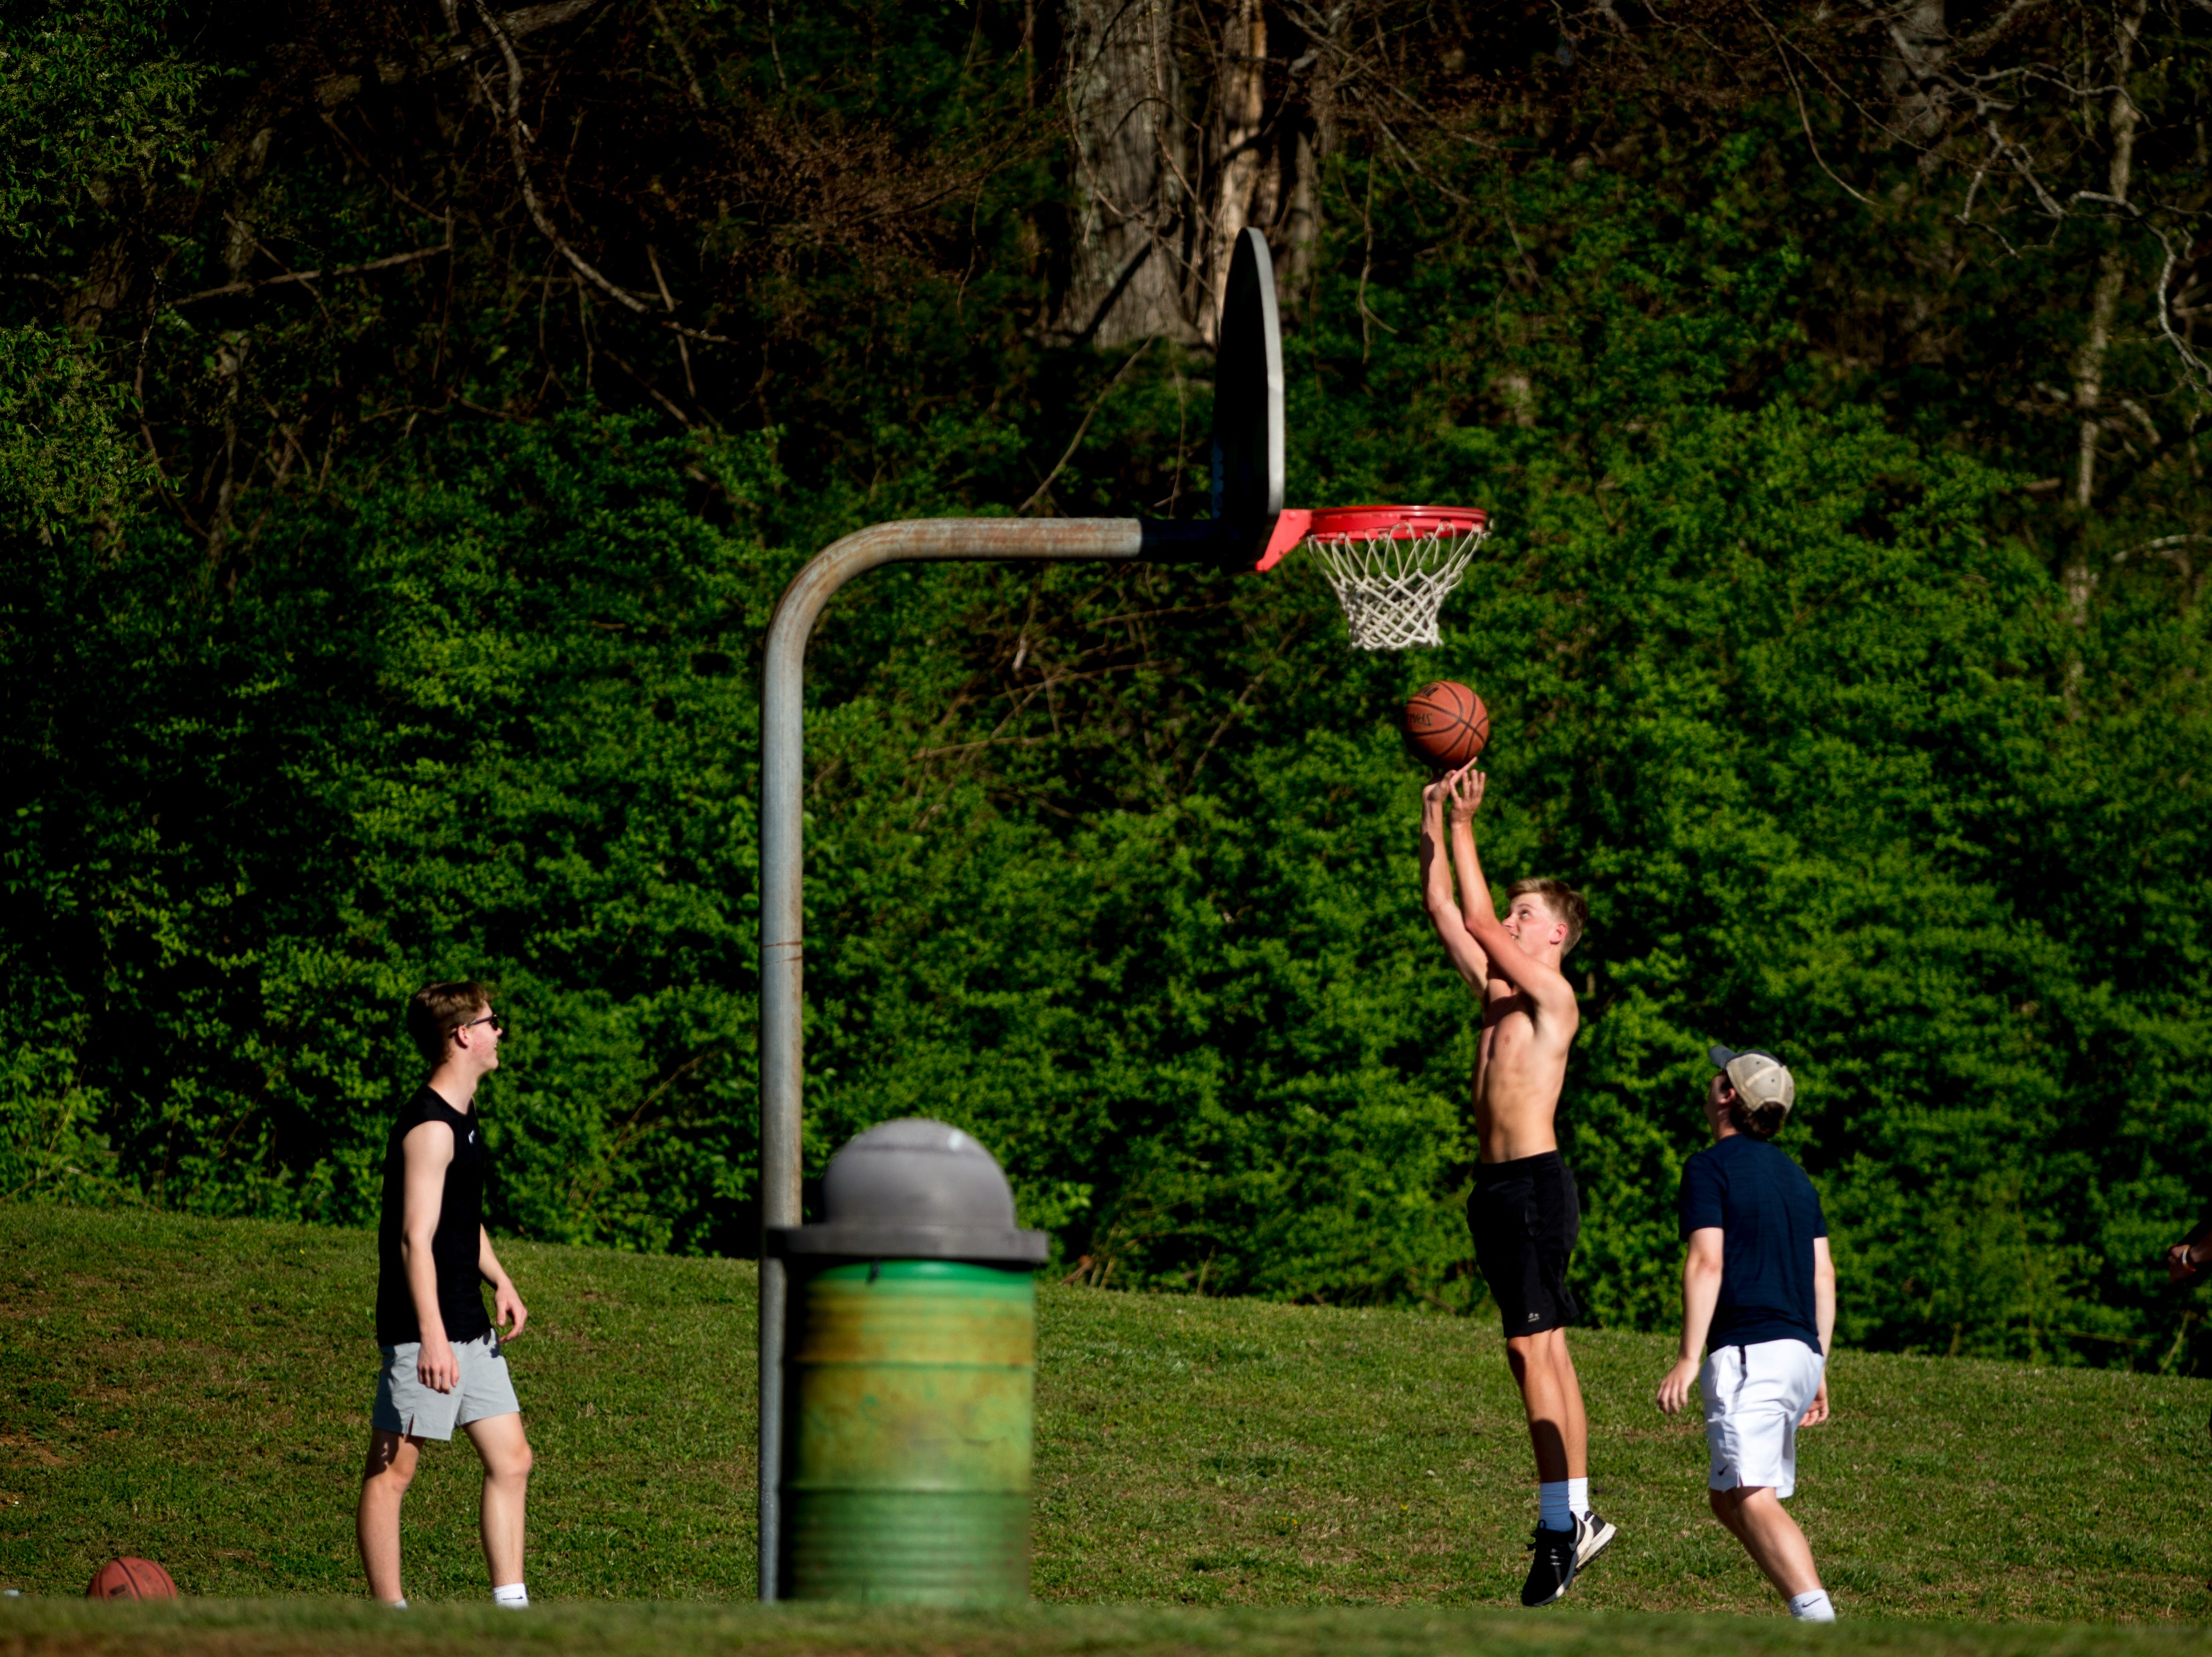 Kids play basketball at Carl Cowan Park in Knoxville, Tennessee on Wednesday, April 10, 2019.